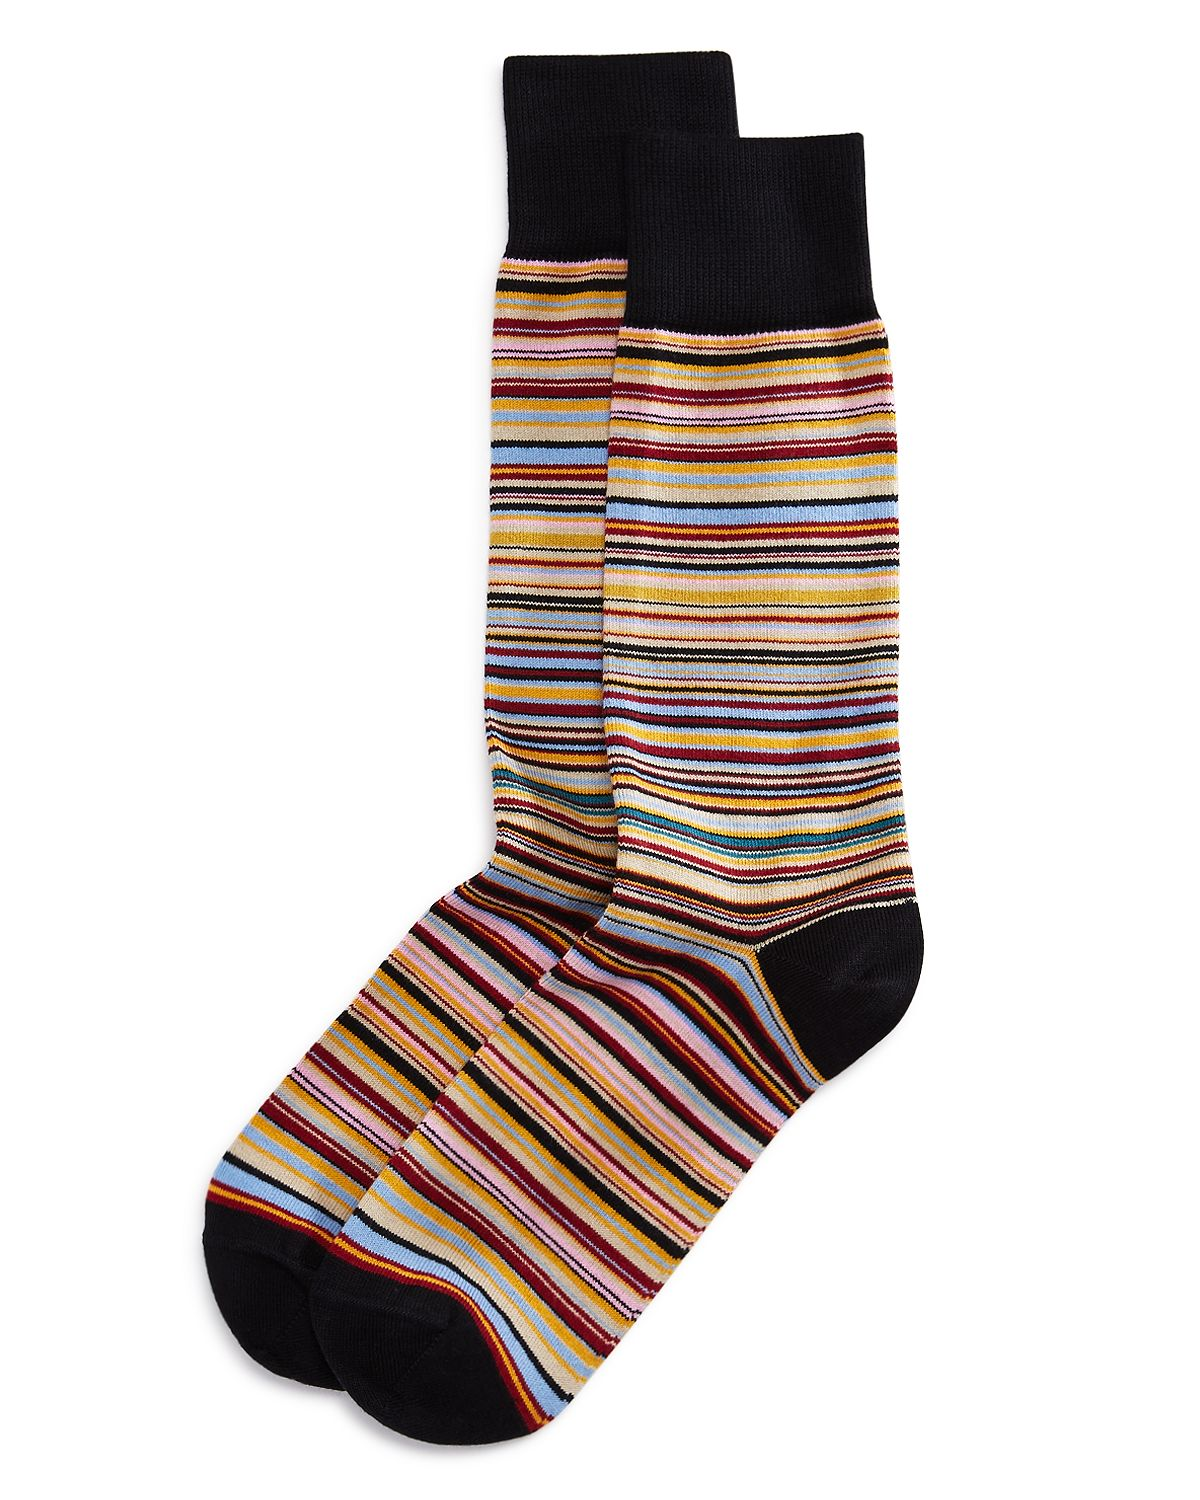 Paul Smith Multicolored Stripe Socks